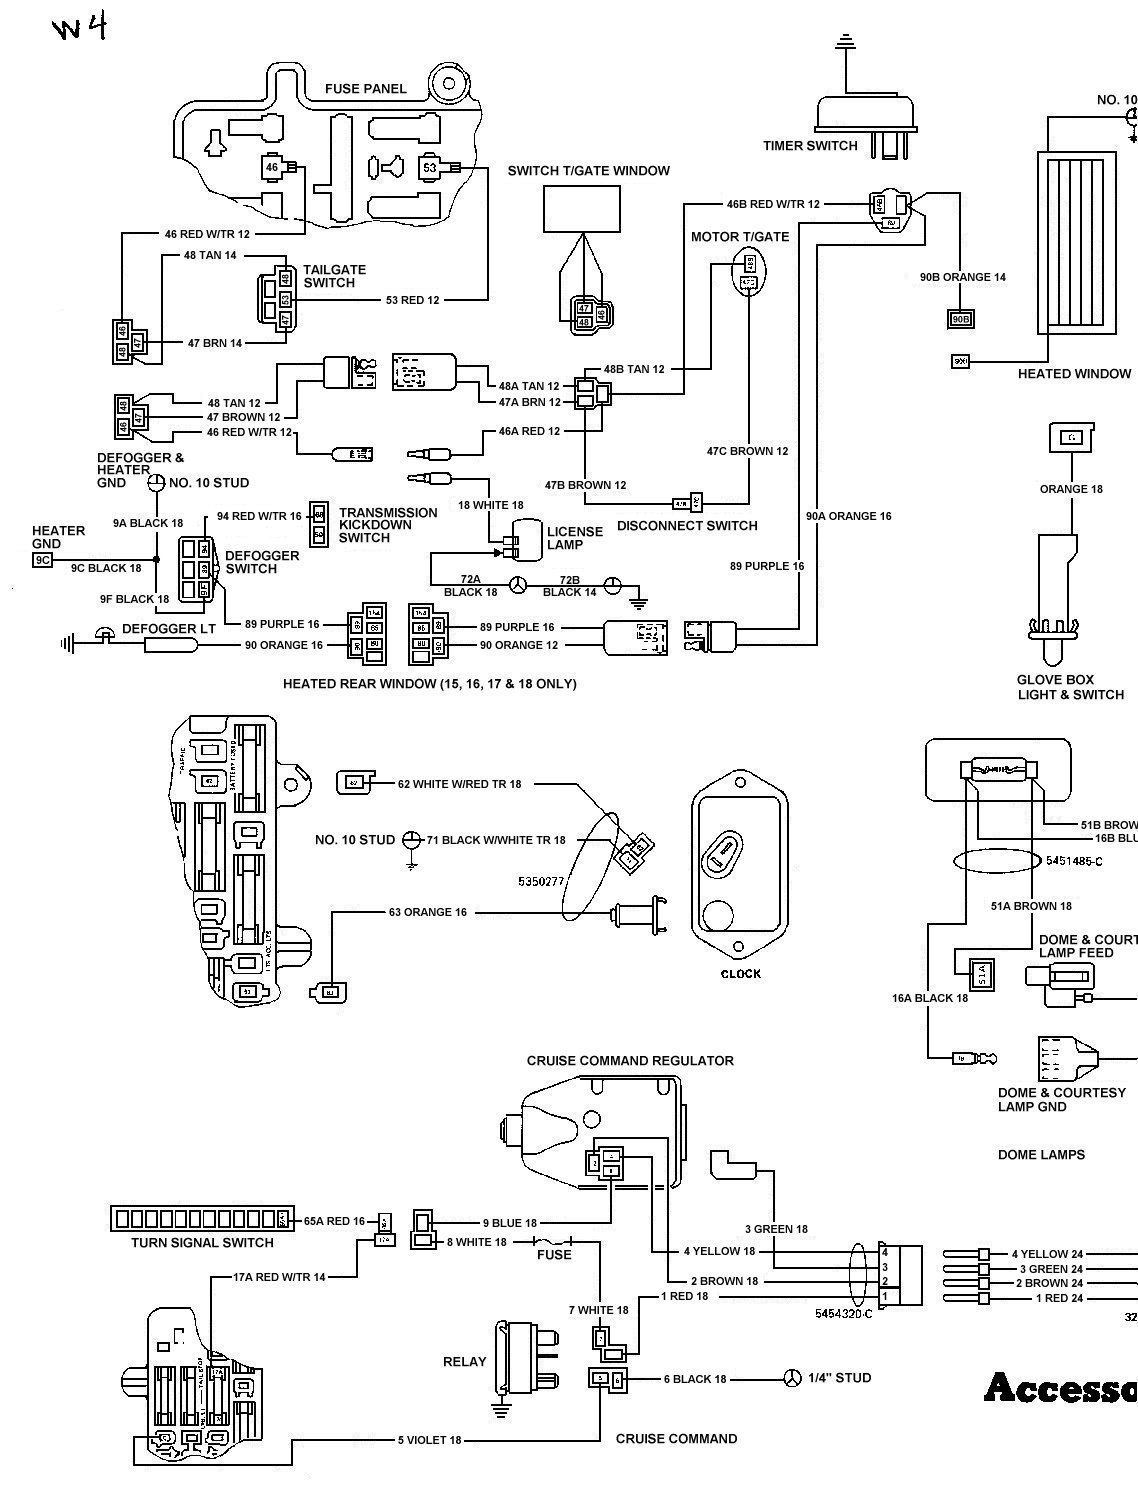 78 dodge van wiring diagram